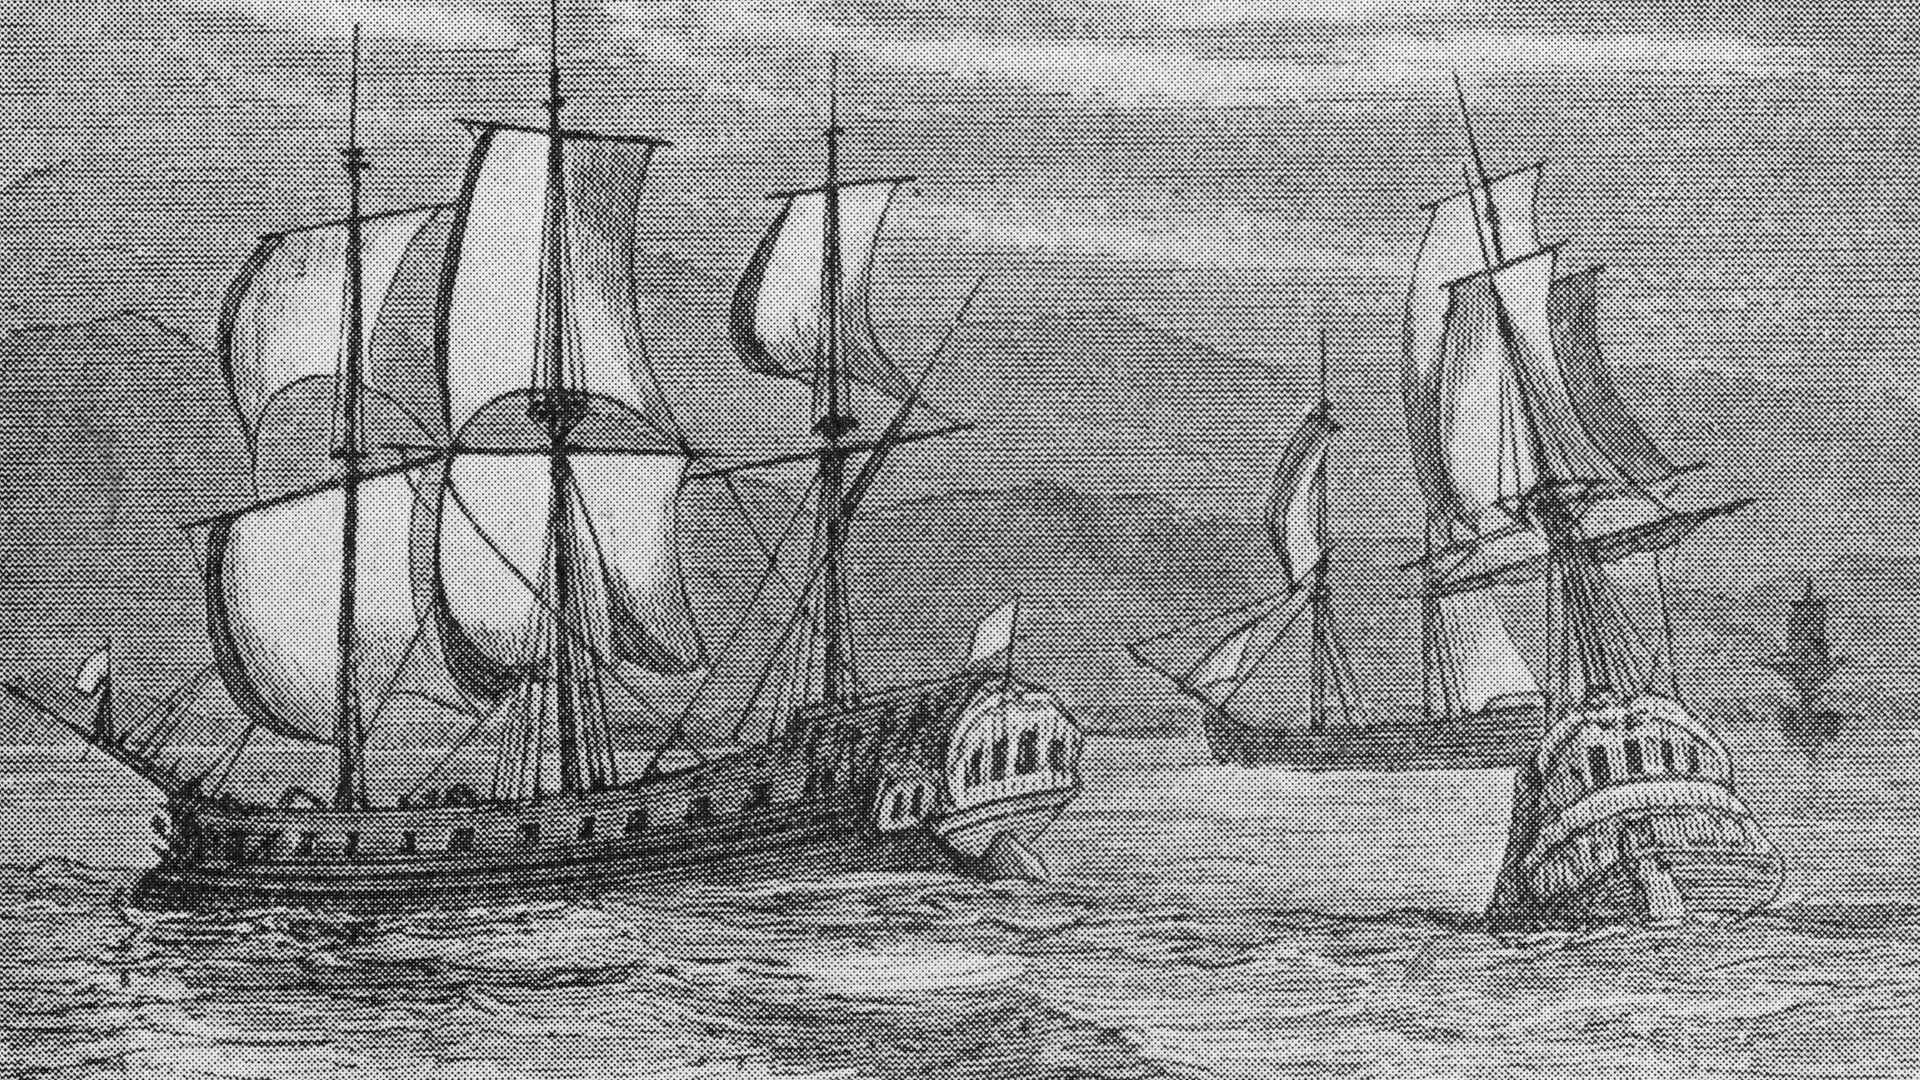 Some of the First Fleet, the ships which took British convicts to Botany Bay, where they established the first European settlement in Australia, 1788 - Credit: Getty Images